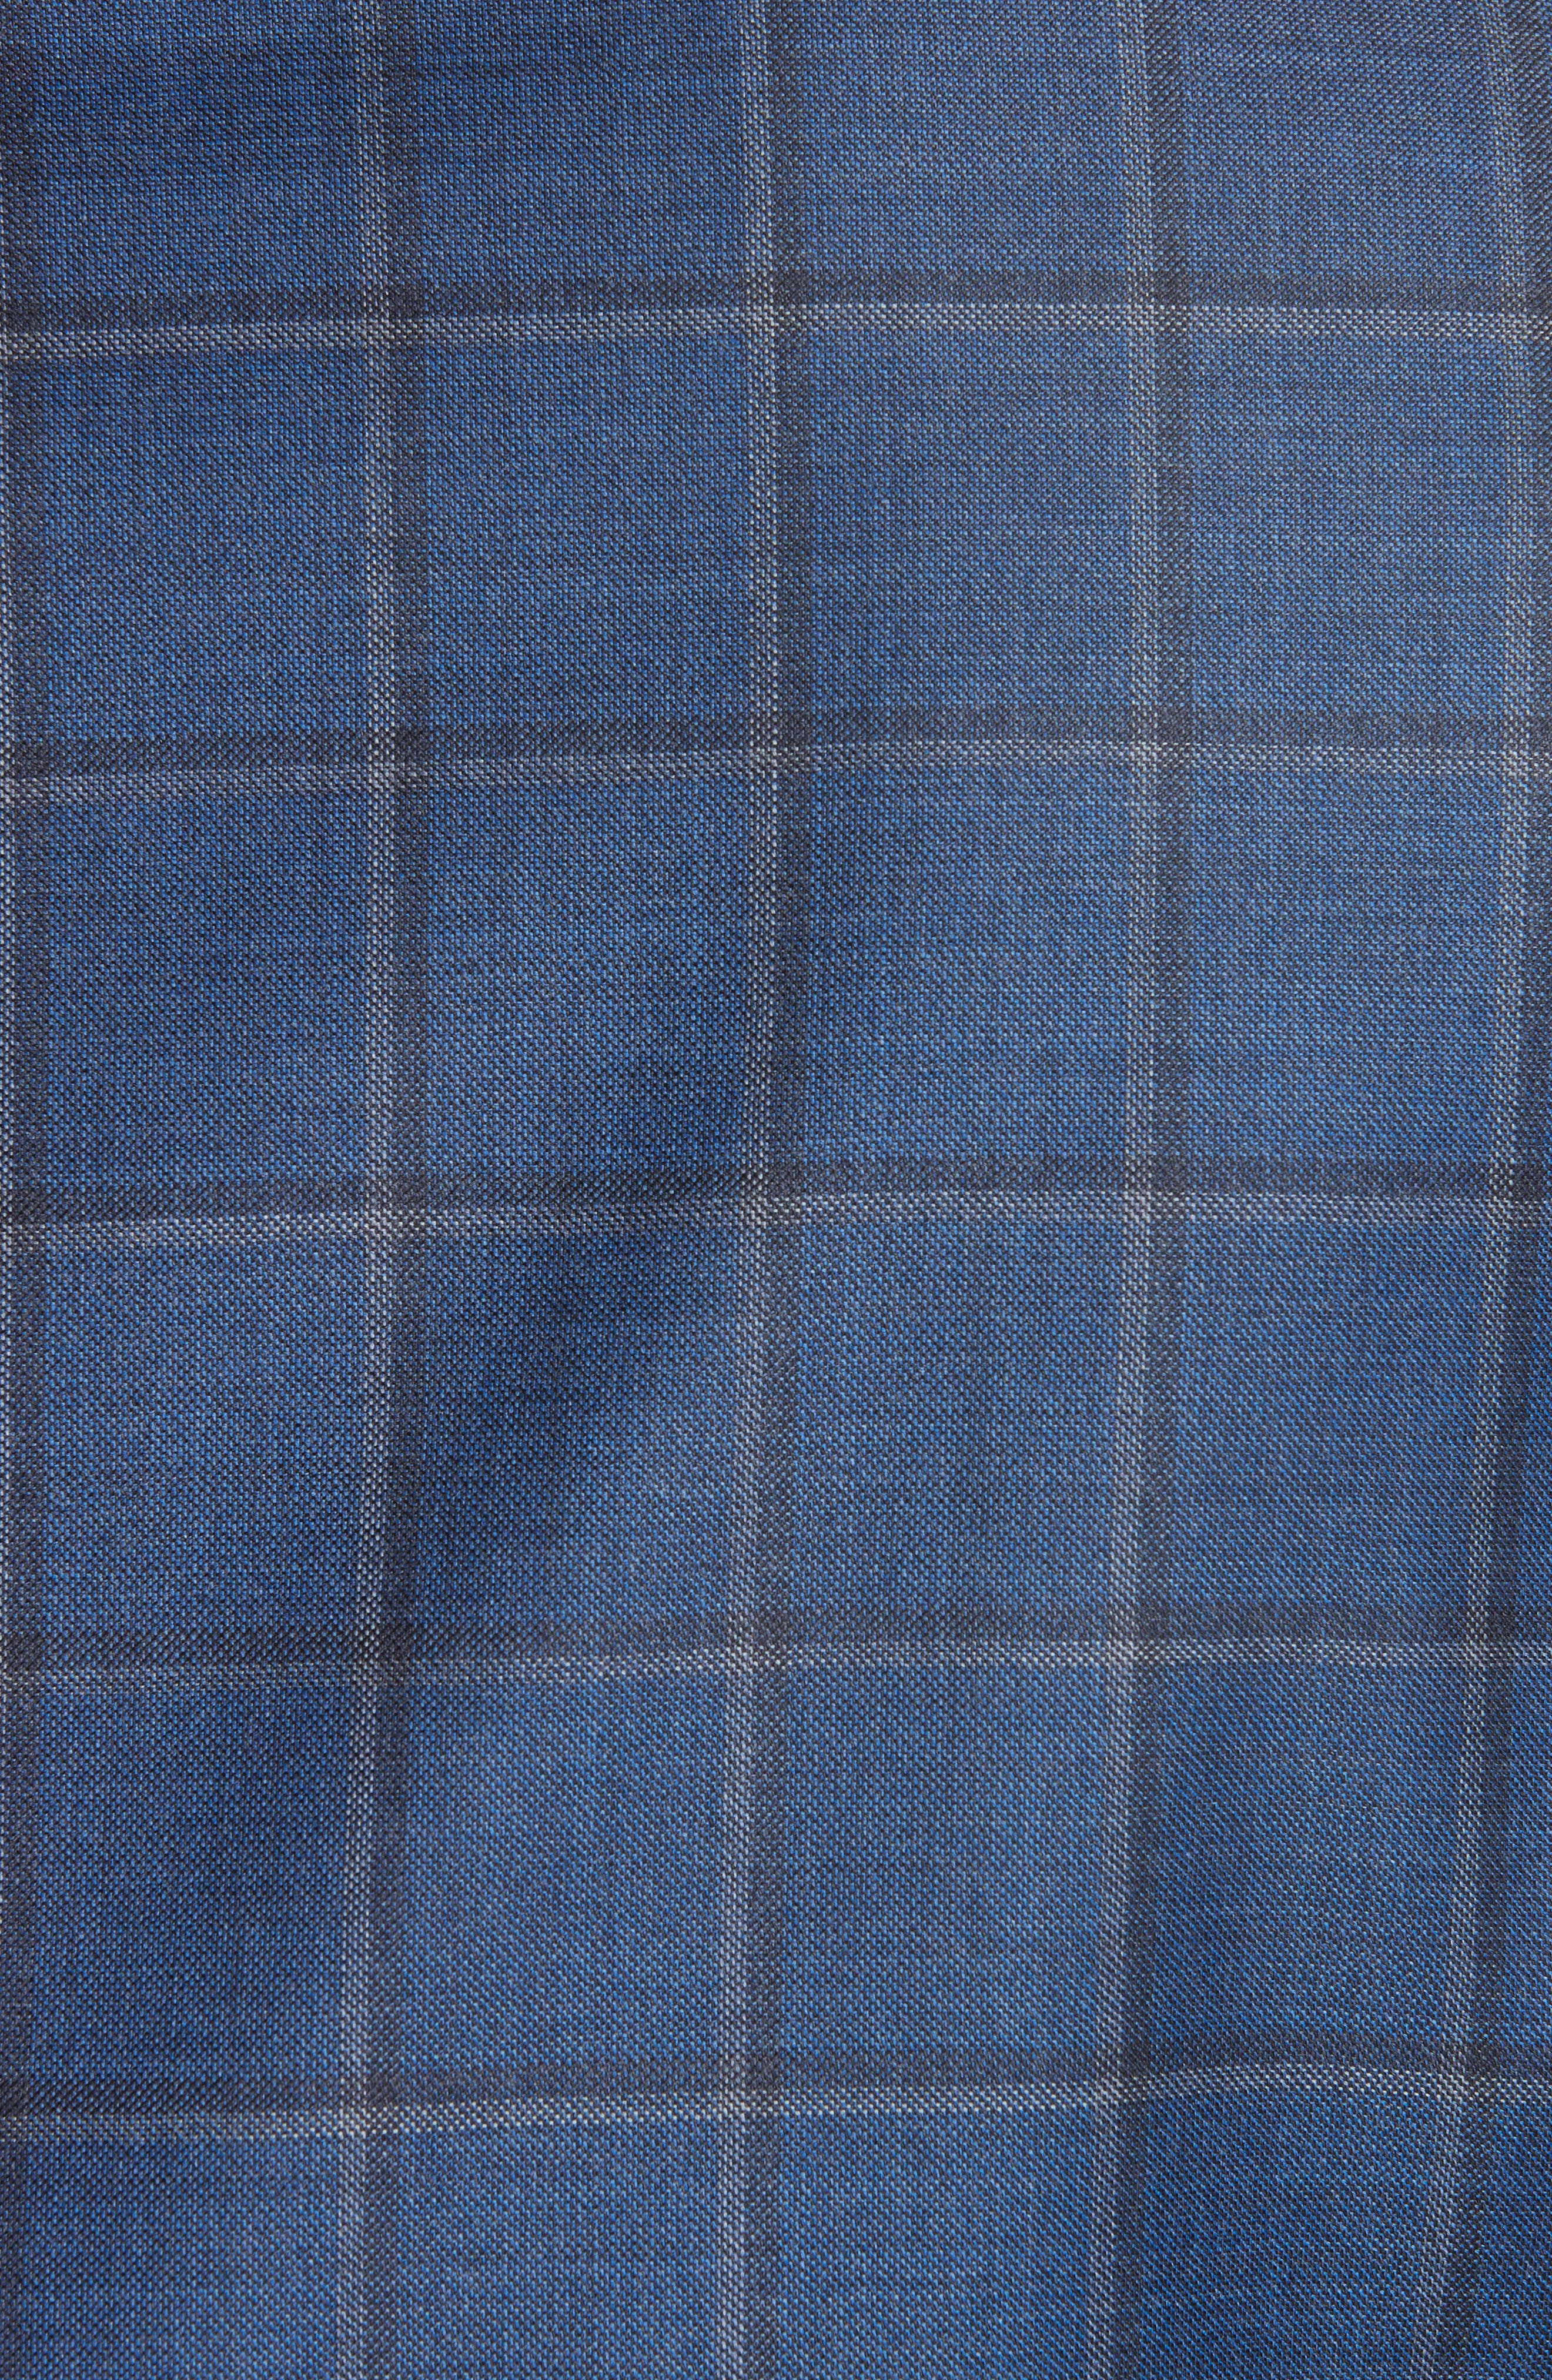 Classic Fit Windowpane Wool Sport Coat,                             Alternate thumbnail 6, color,                             BLUE